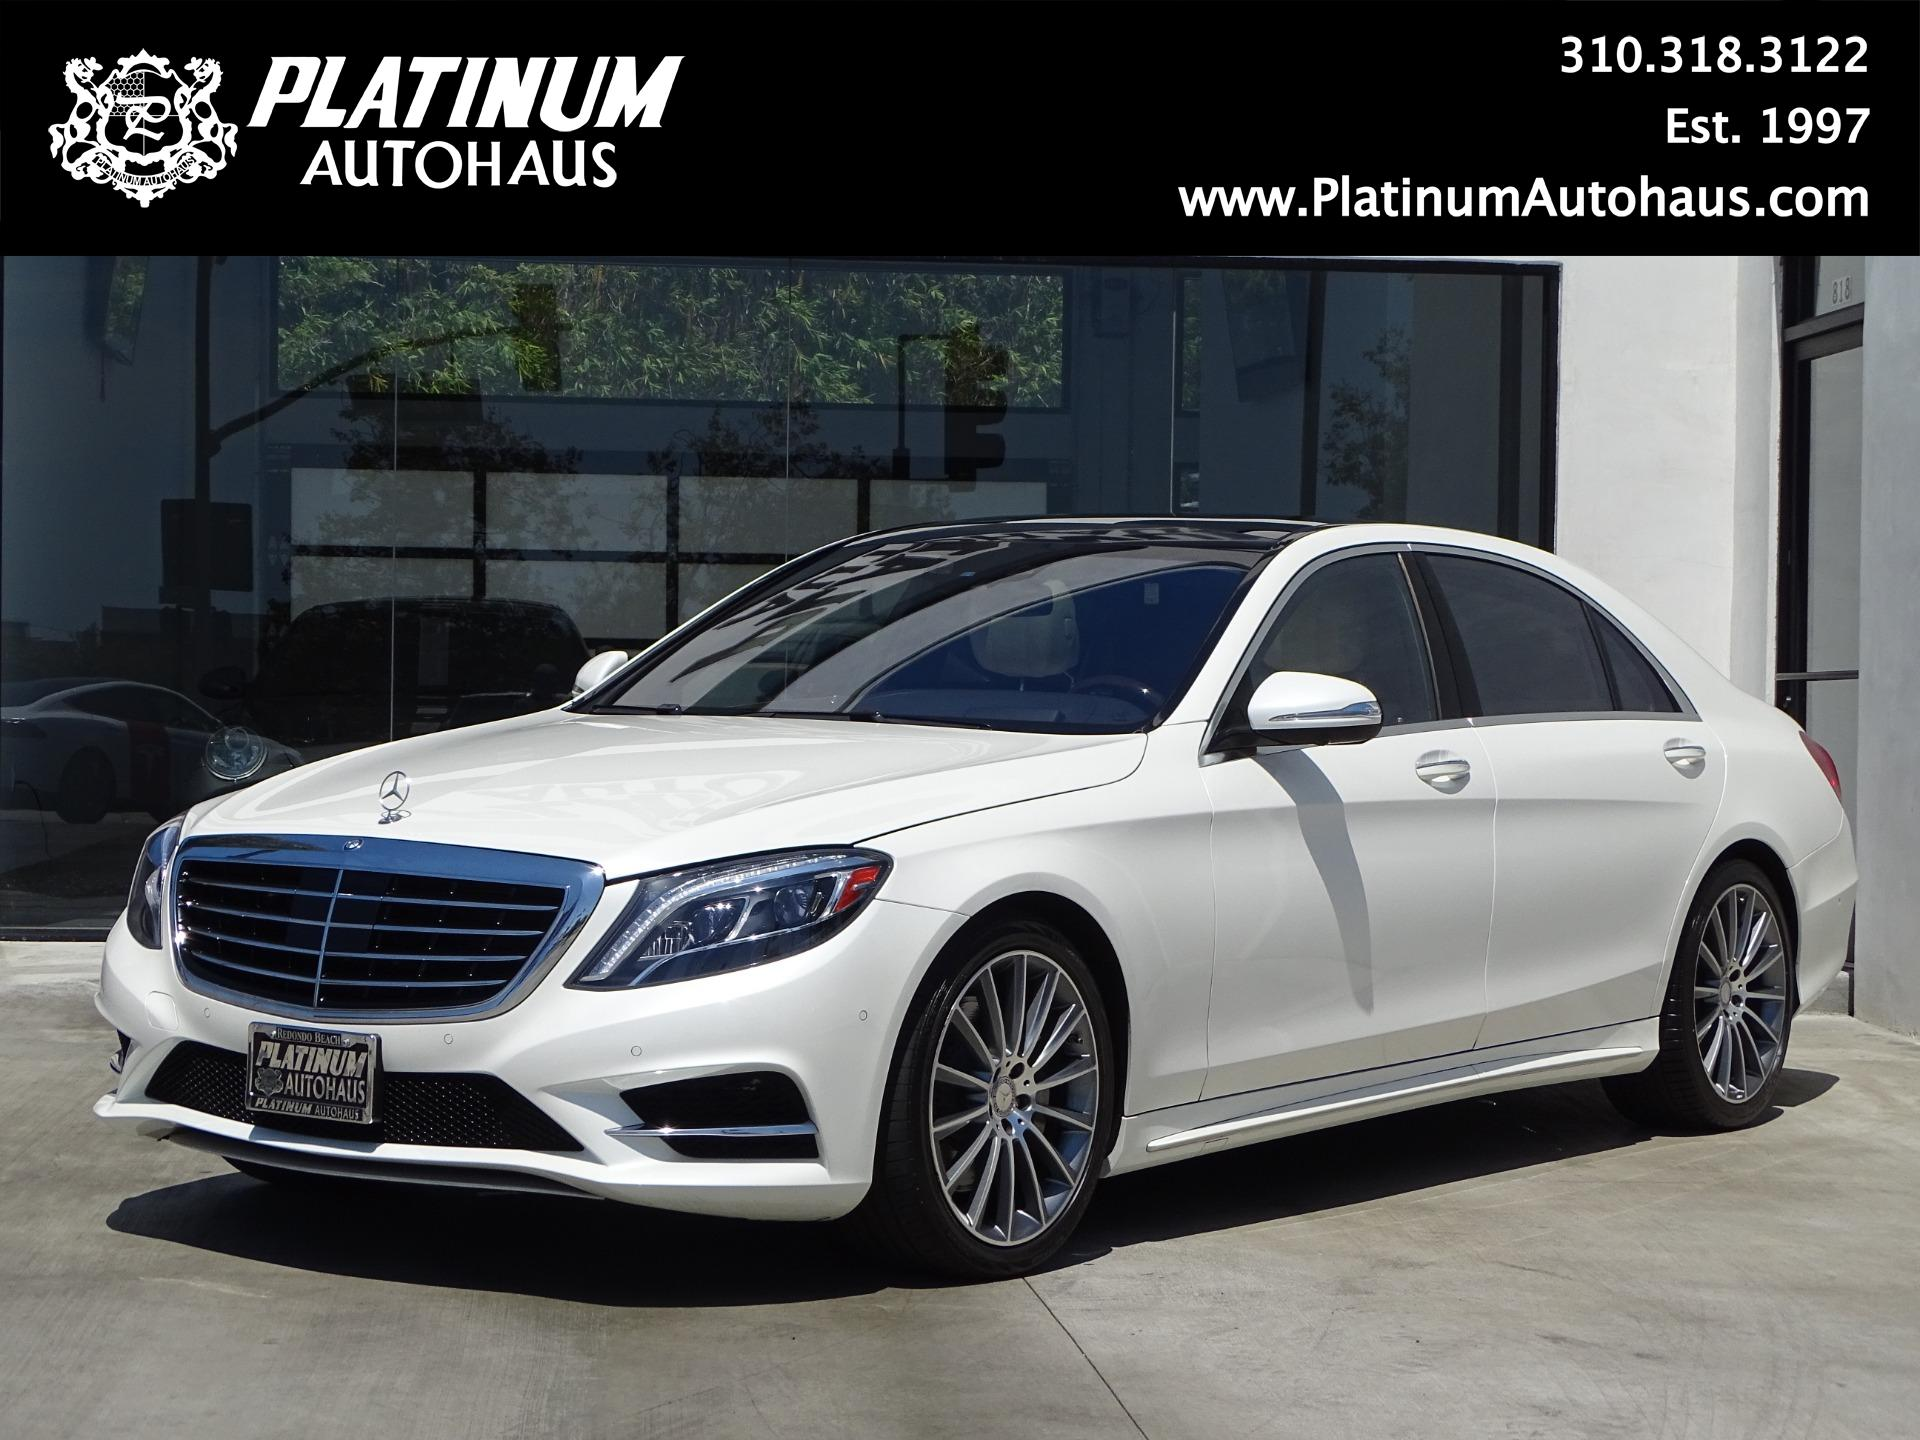 2015 mercedes benz s class s 550 stock 6134 for sale for Mercedes benz s class 550